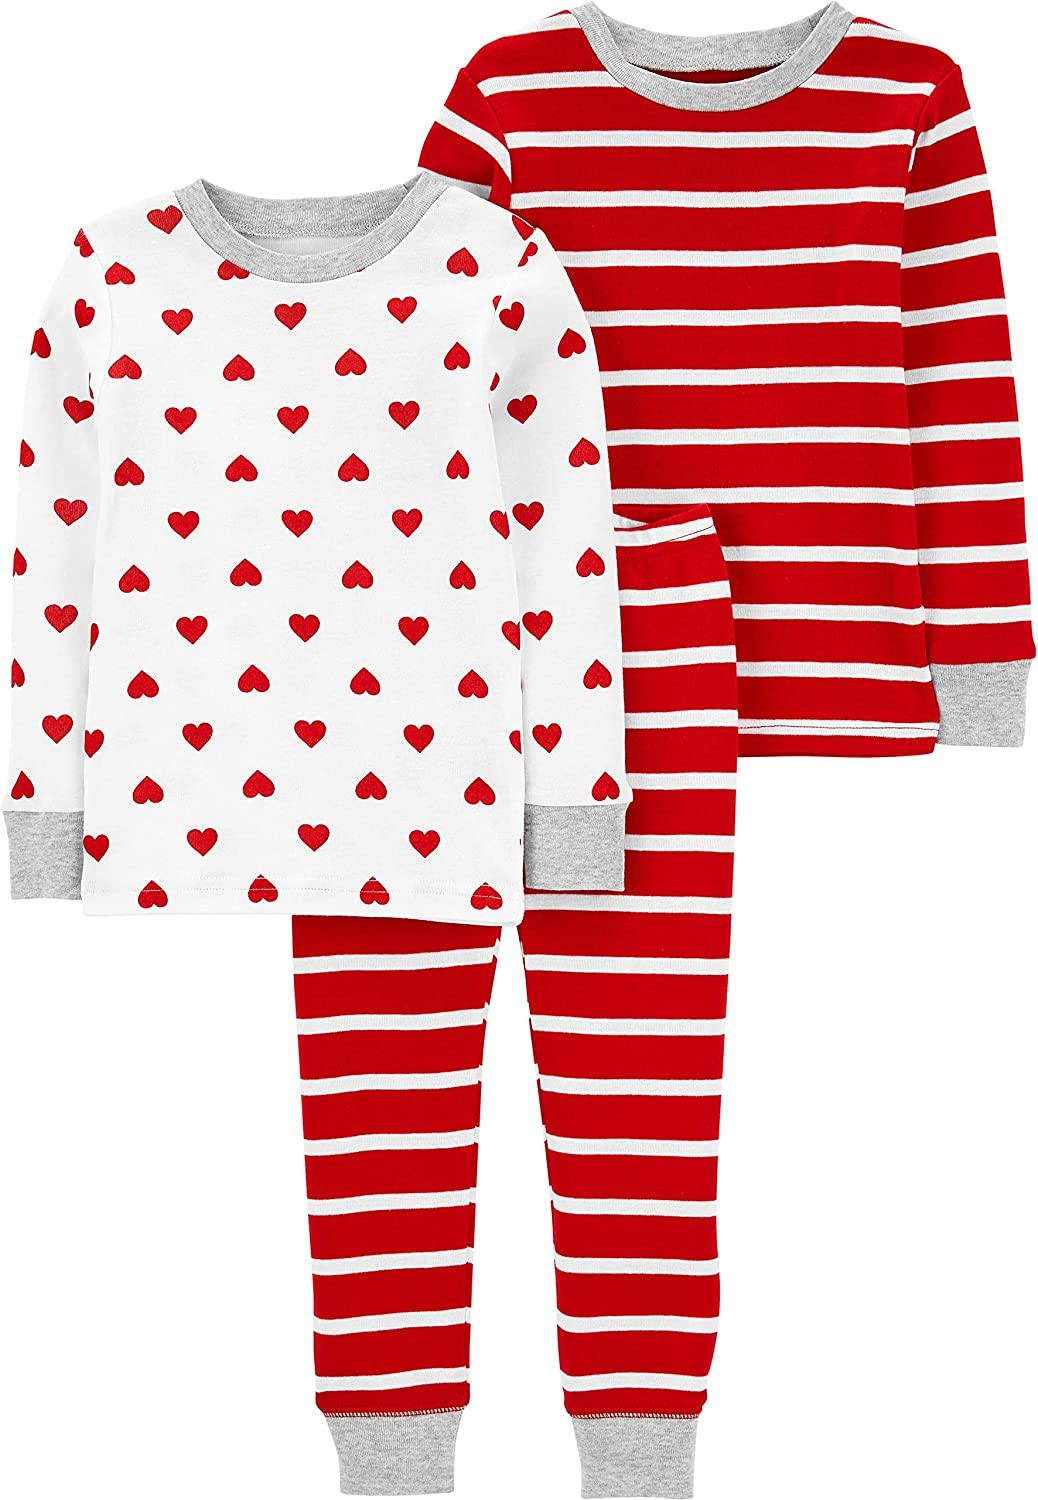 Simple Joys by Carter's Baby, Toddler, and Little Kids' 3-Piece Snug-fit Cotton Valentines Pajama Set